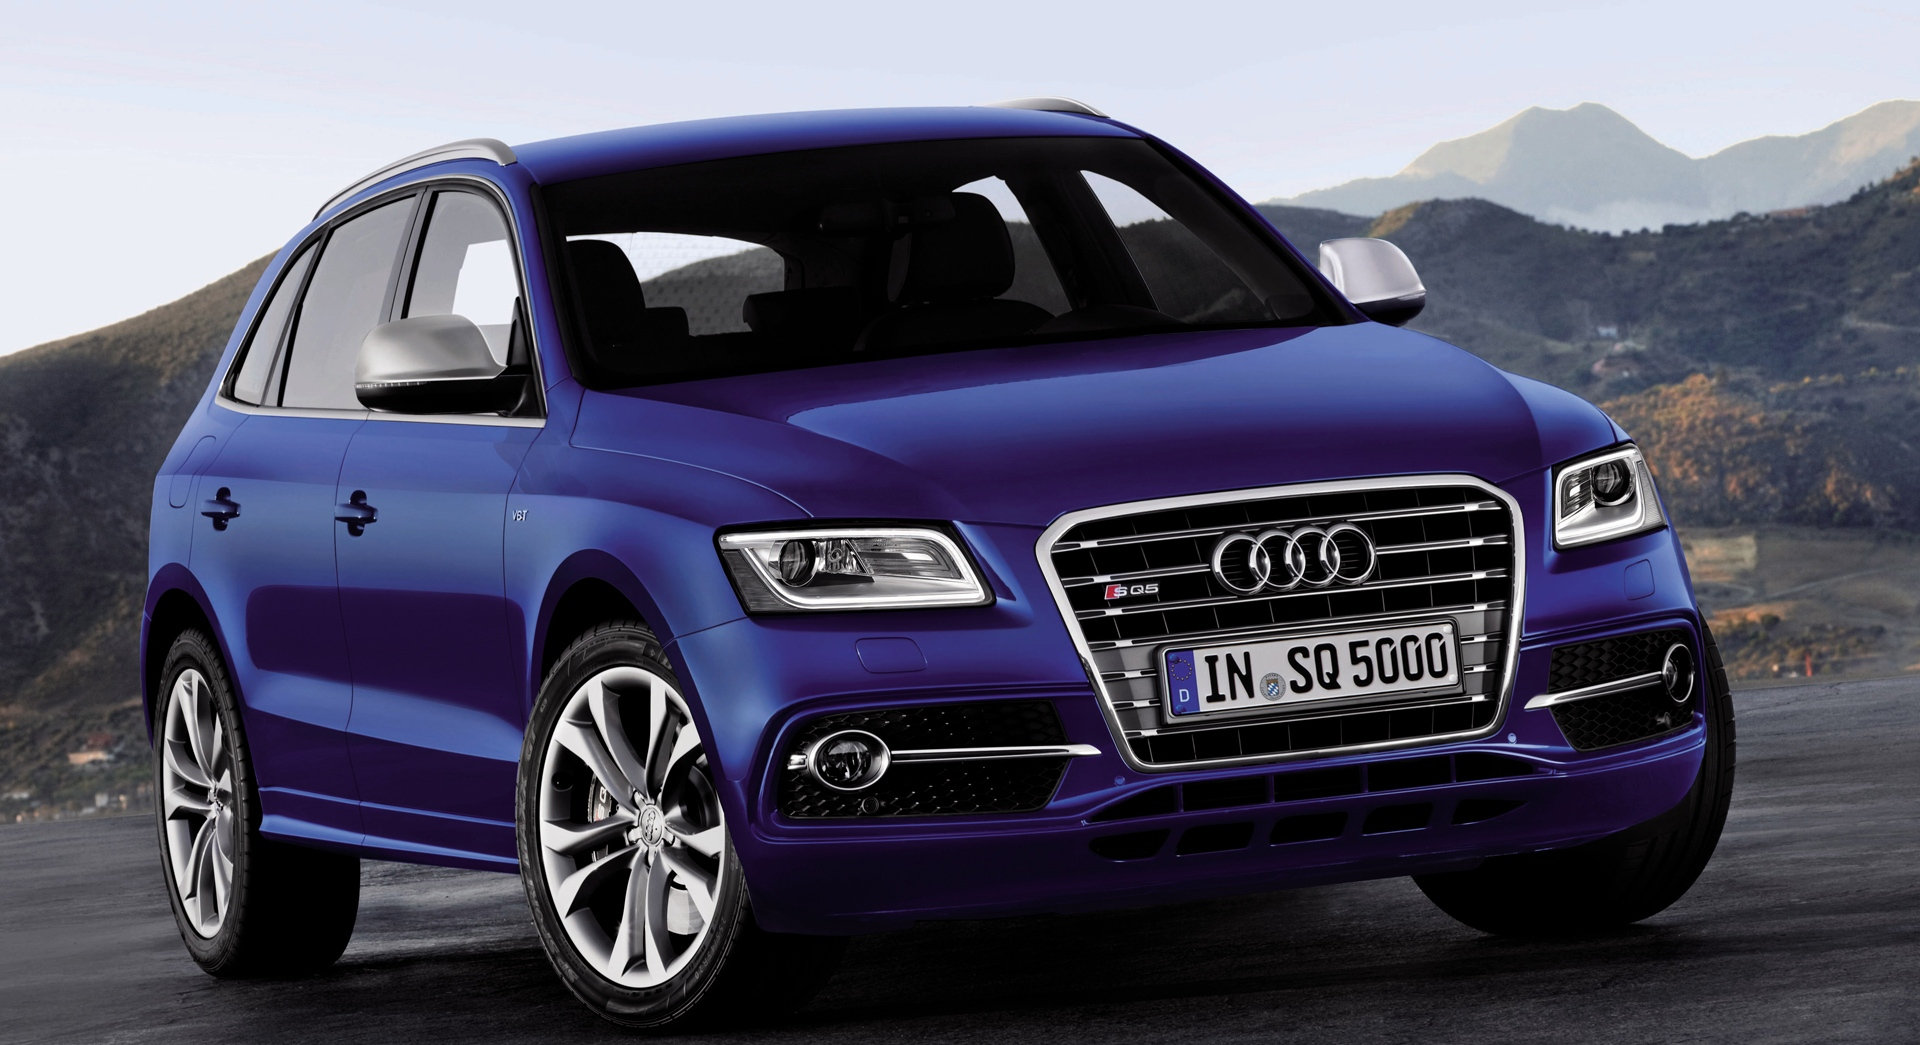 audi sq5 tdi hd desktop wallpapers 4k hd. Black Bedroom Furniture Sets. Home Design Ideas